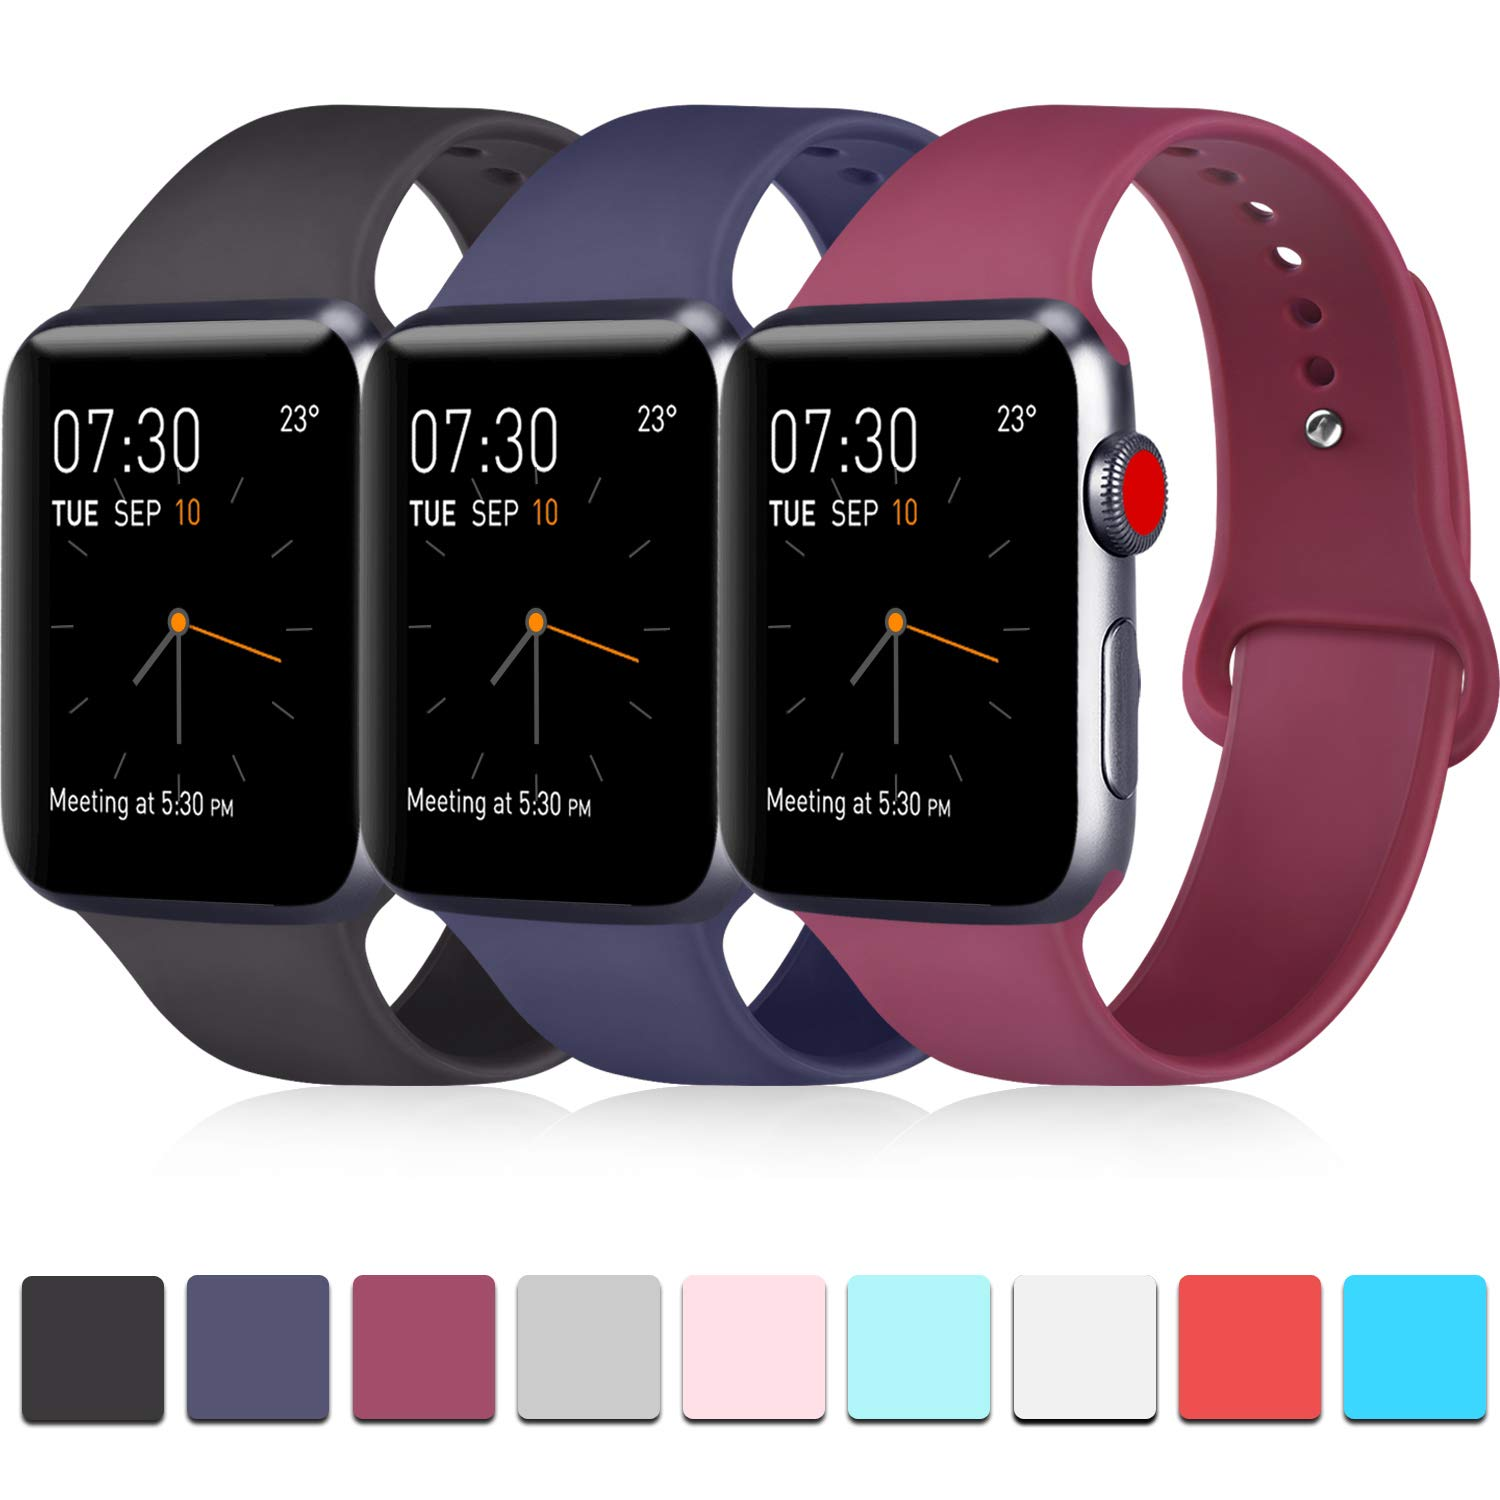 Pack 3 Compatible with Apple Watch Band 38mm for Men, Soft Silicone Band Compatible iWatch Series 4, Series 3, Series 2, Series 1 (Black/Navy Blue/Wine Red, 38mm/40mm-S/M)